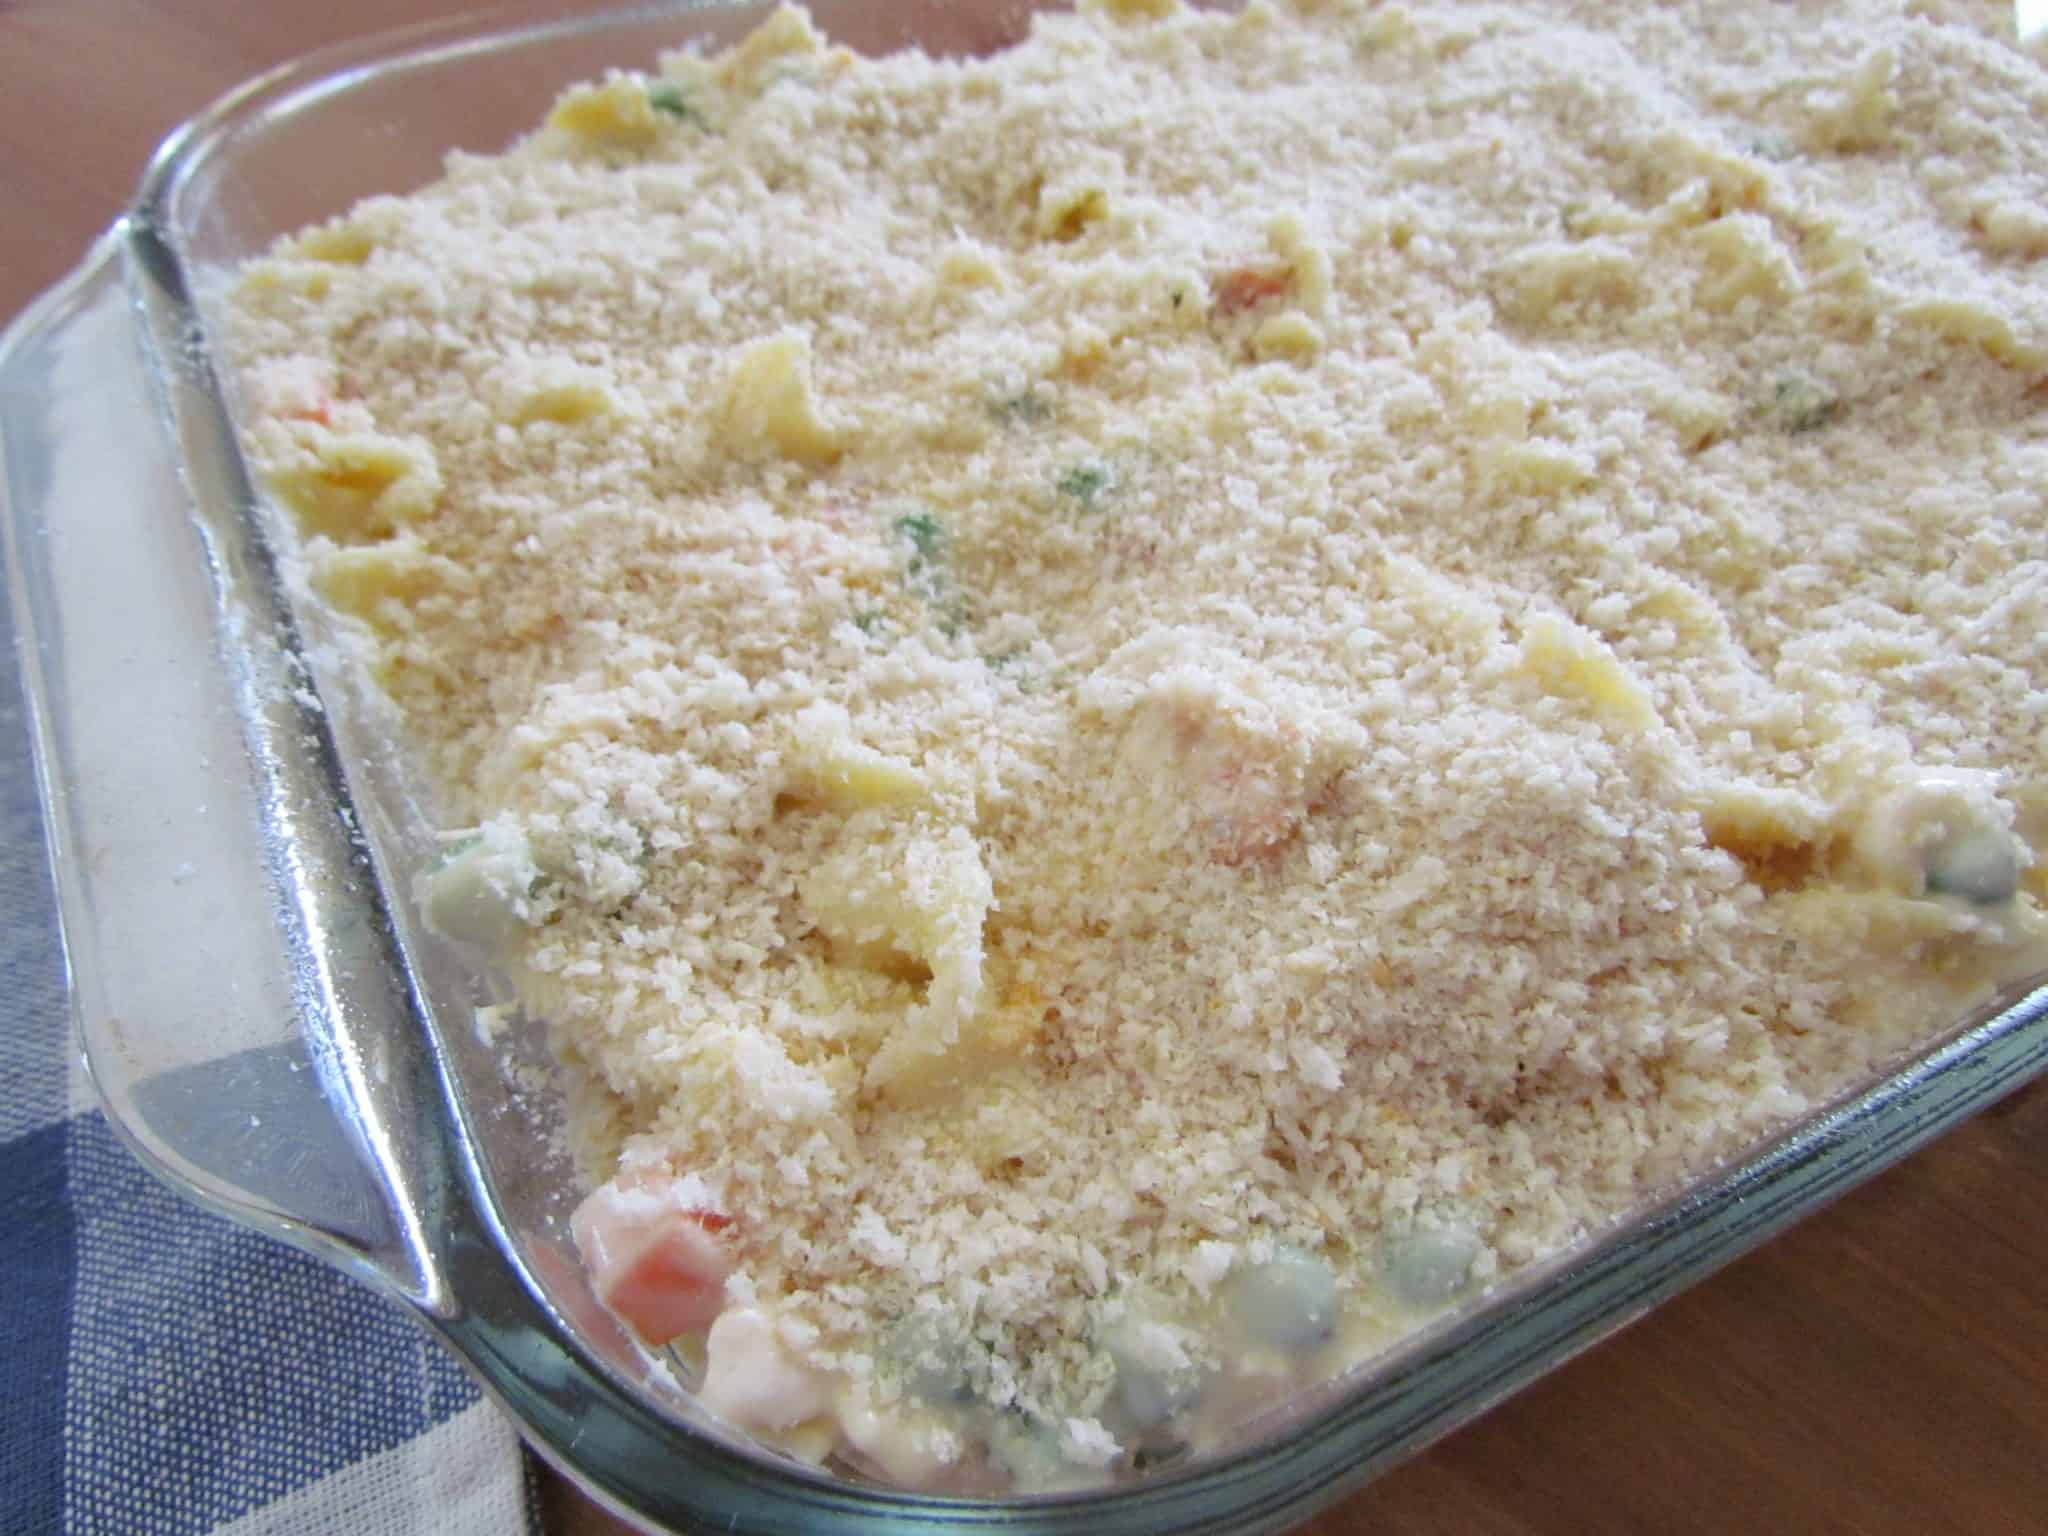 panko bread crumbs sprinkled on top of chicken noodle casserole in a 9x13-inch baking dish.